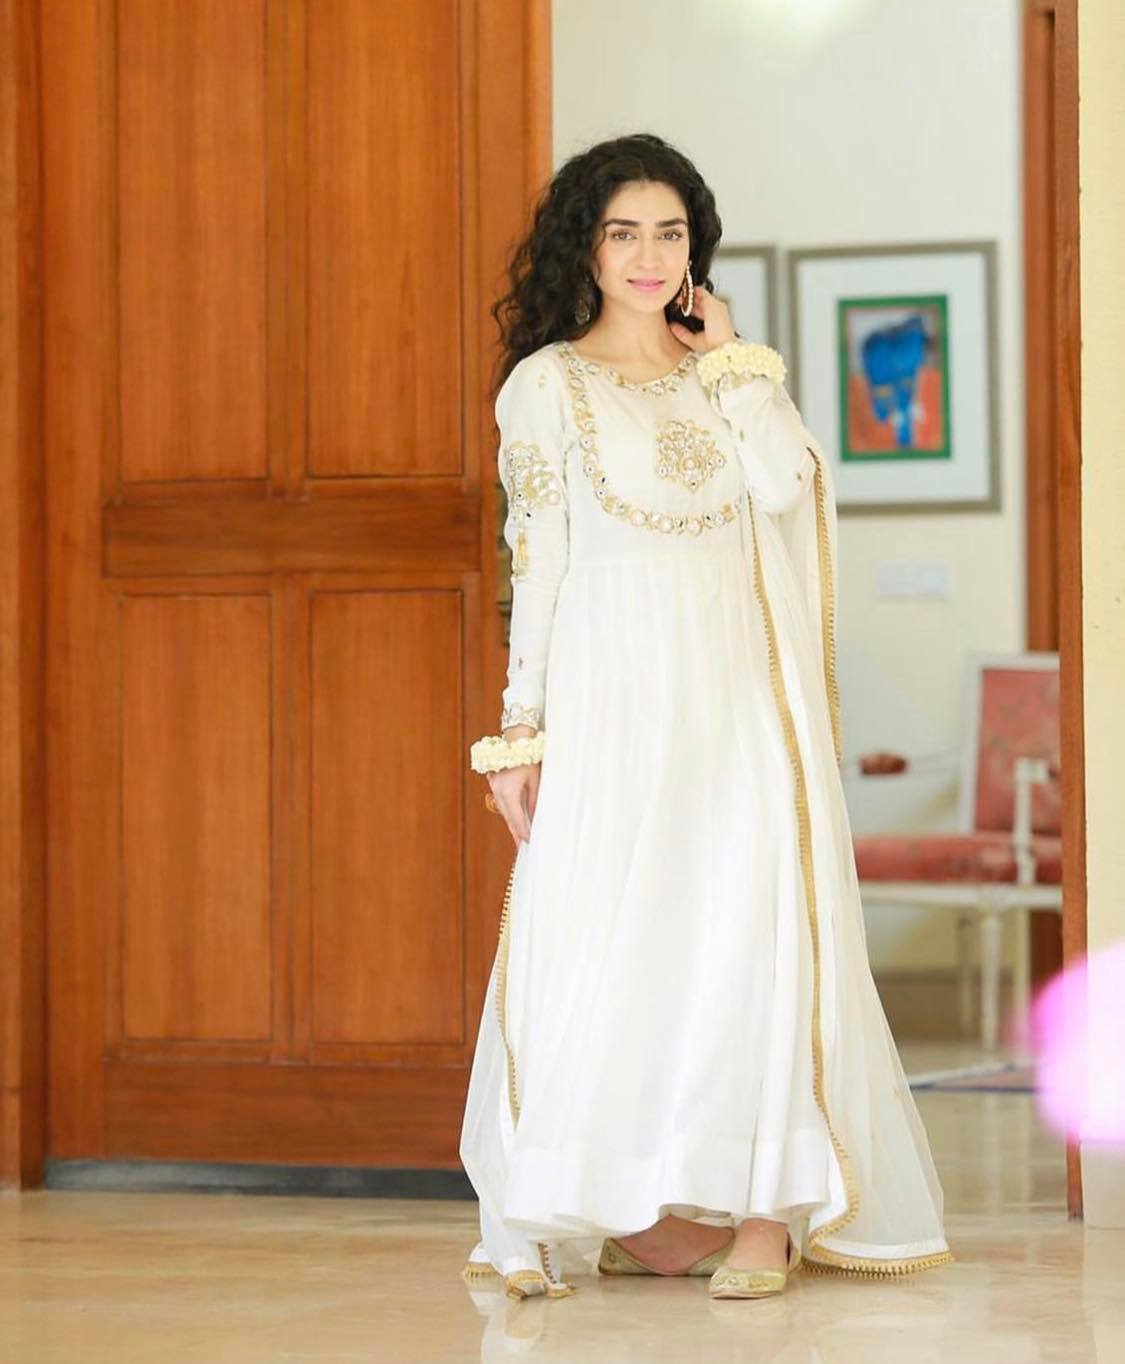 Top Pakistani Actresses In Beautiful White Dresses Reviewit Pk